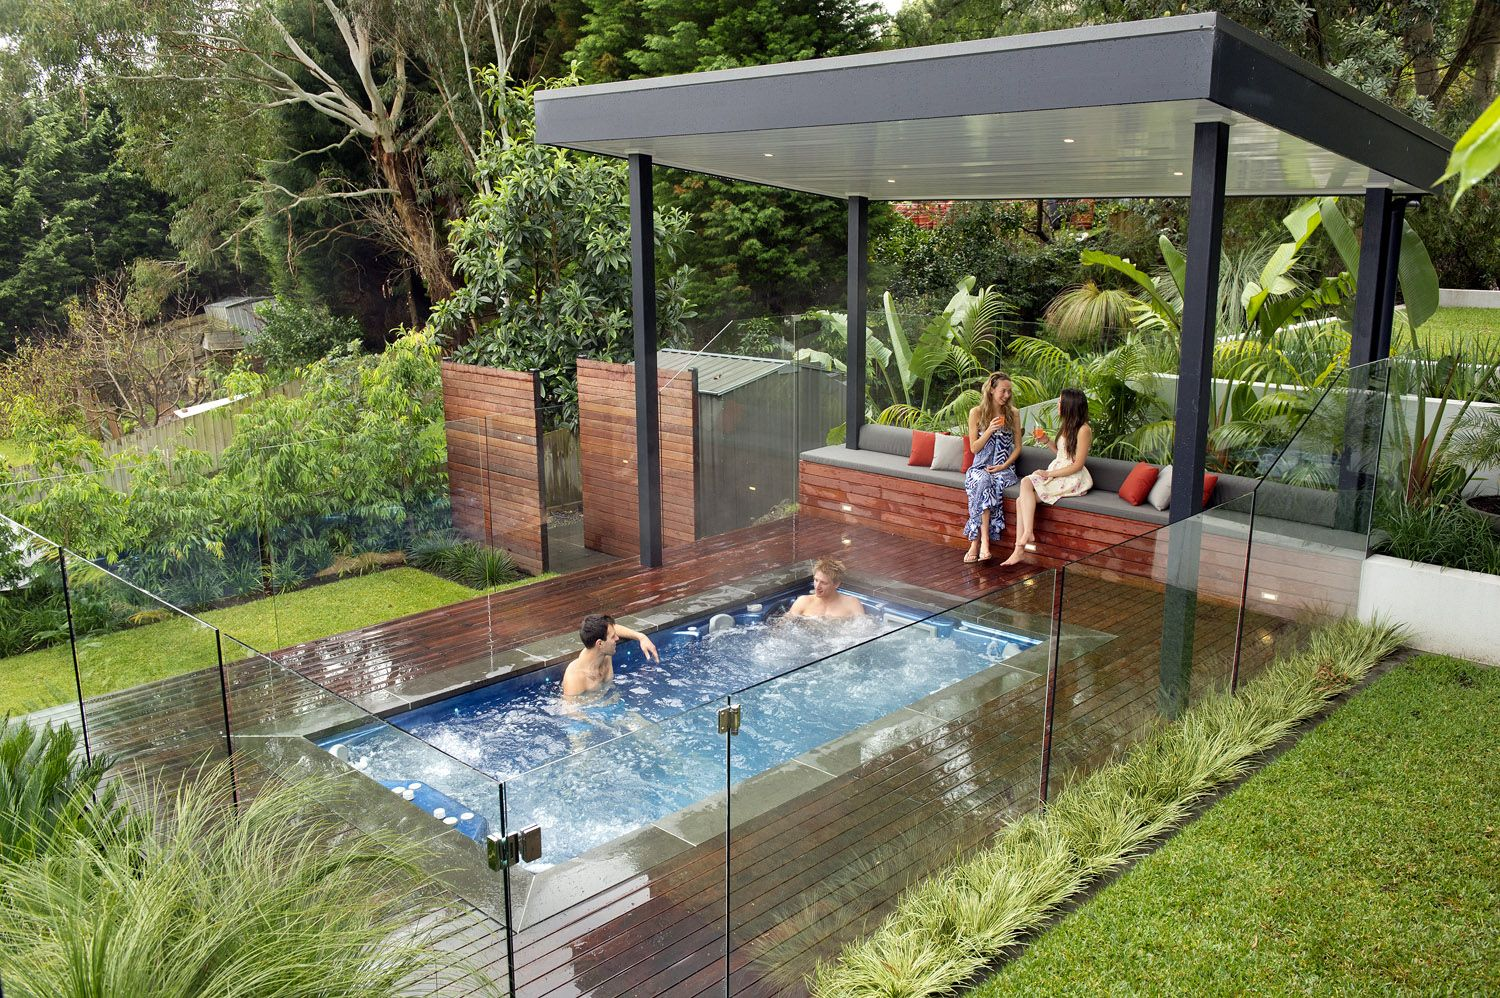 Modern nice design of the outdoor spa landscaping ideas for Above ground pool landscaping ideas australia